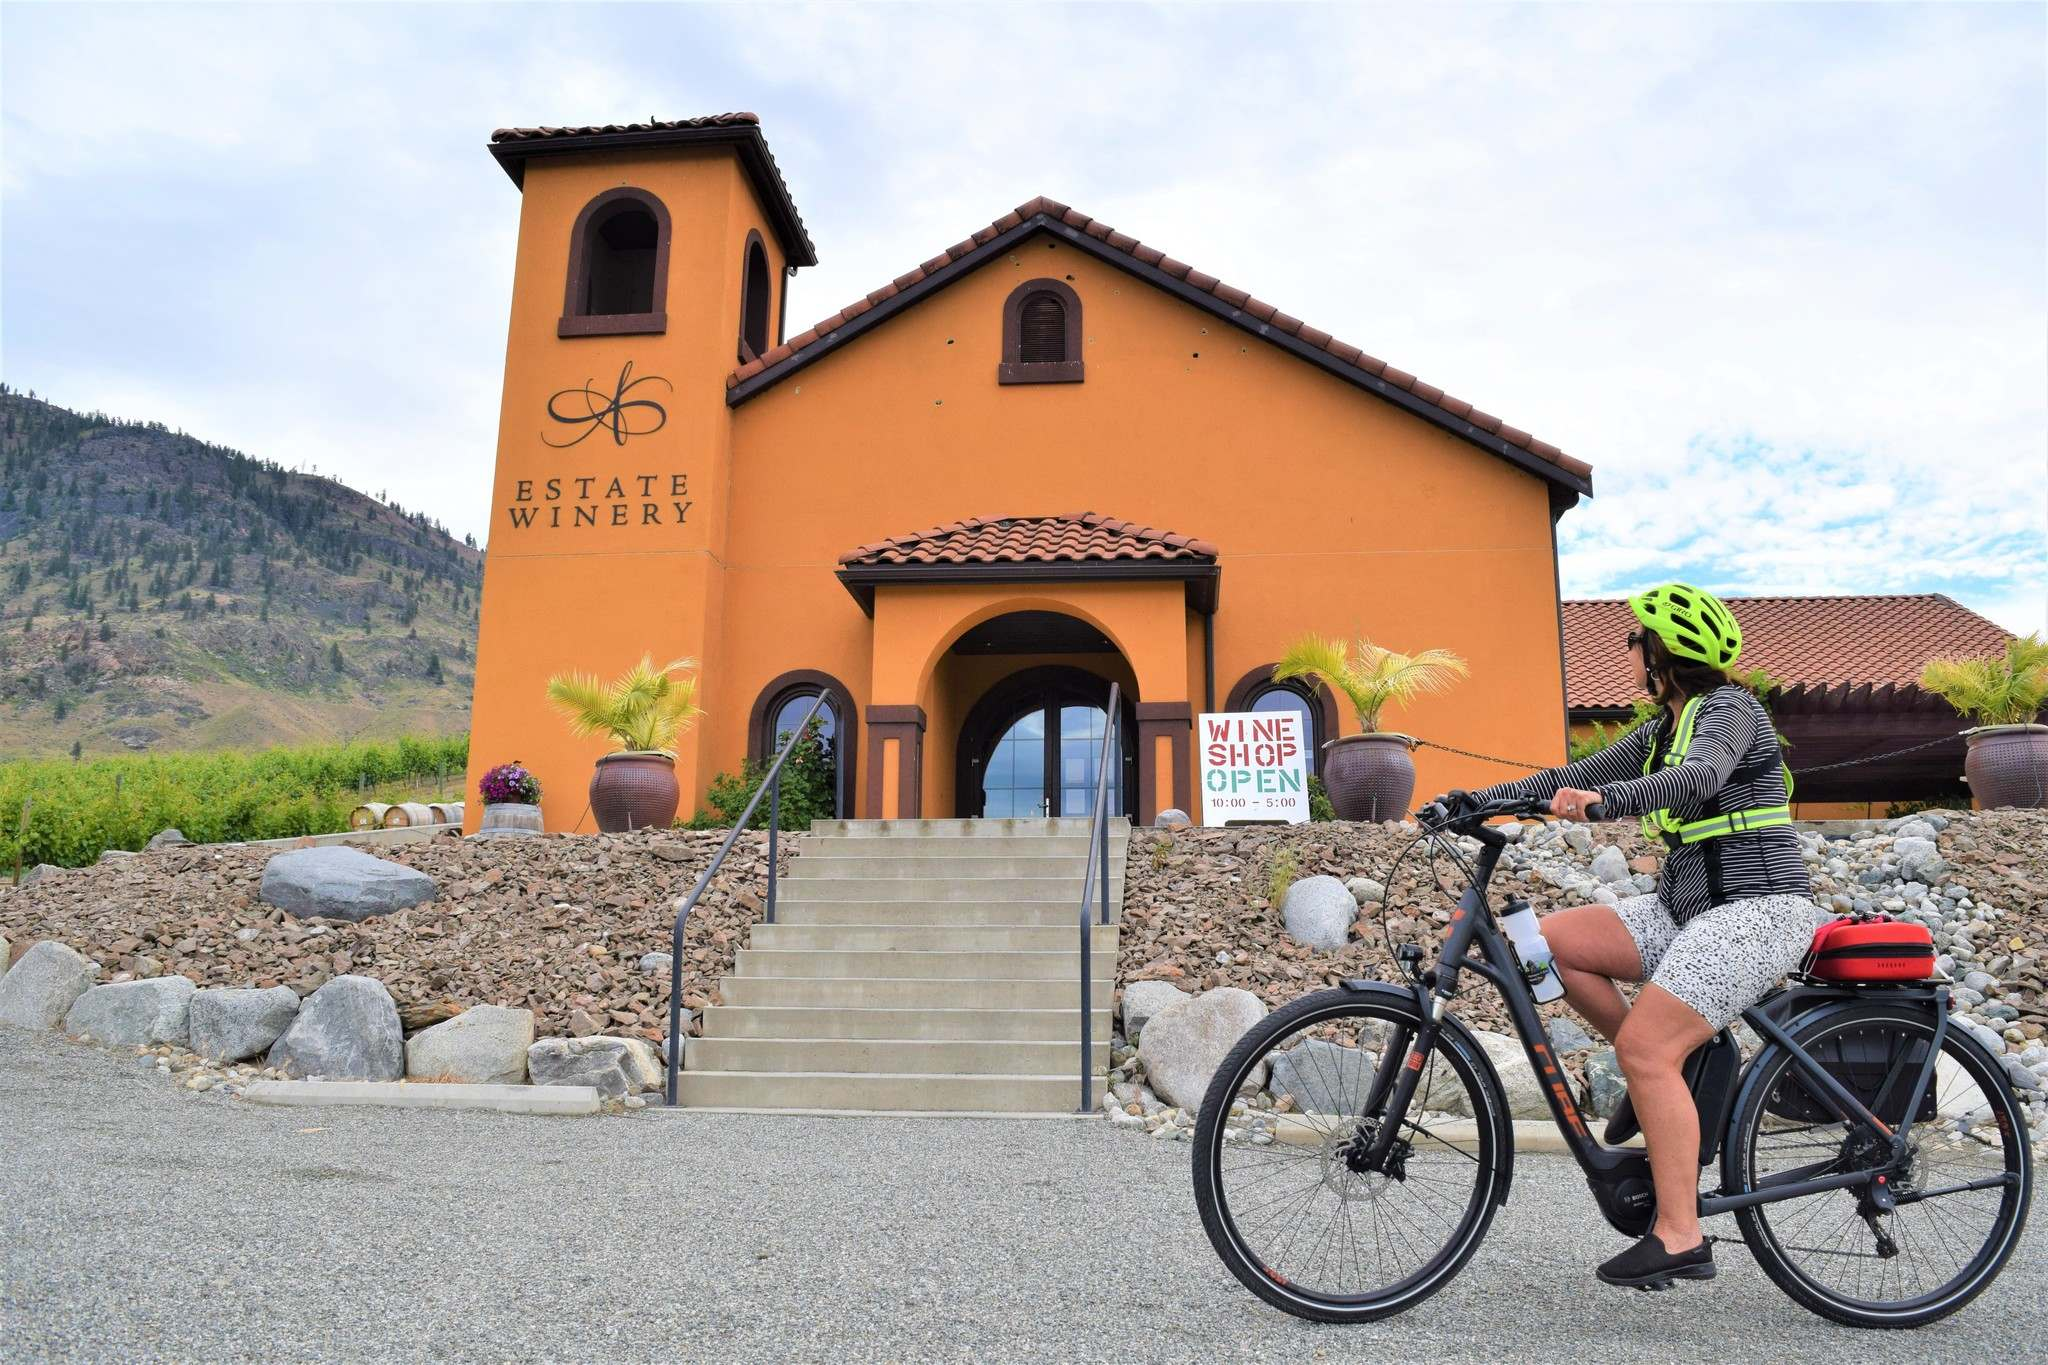 Pulling up in front of Adega Estate Winery in Osoyoos.</p></p>